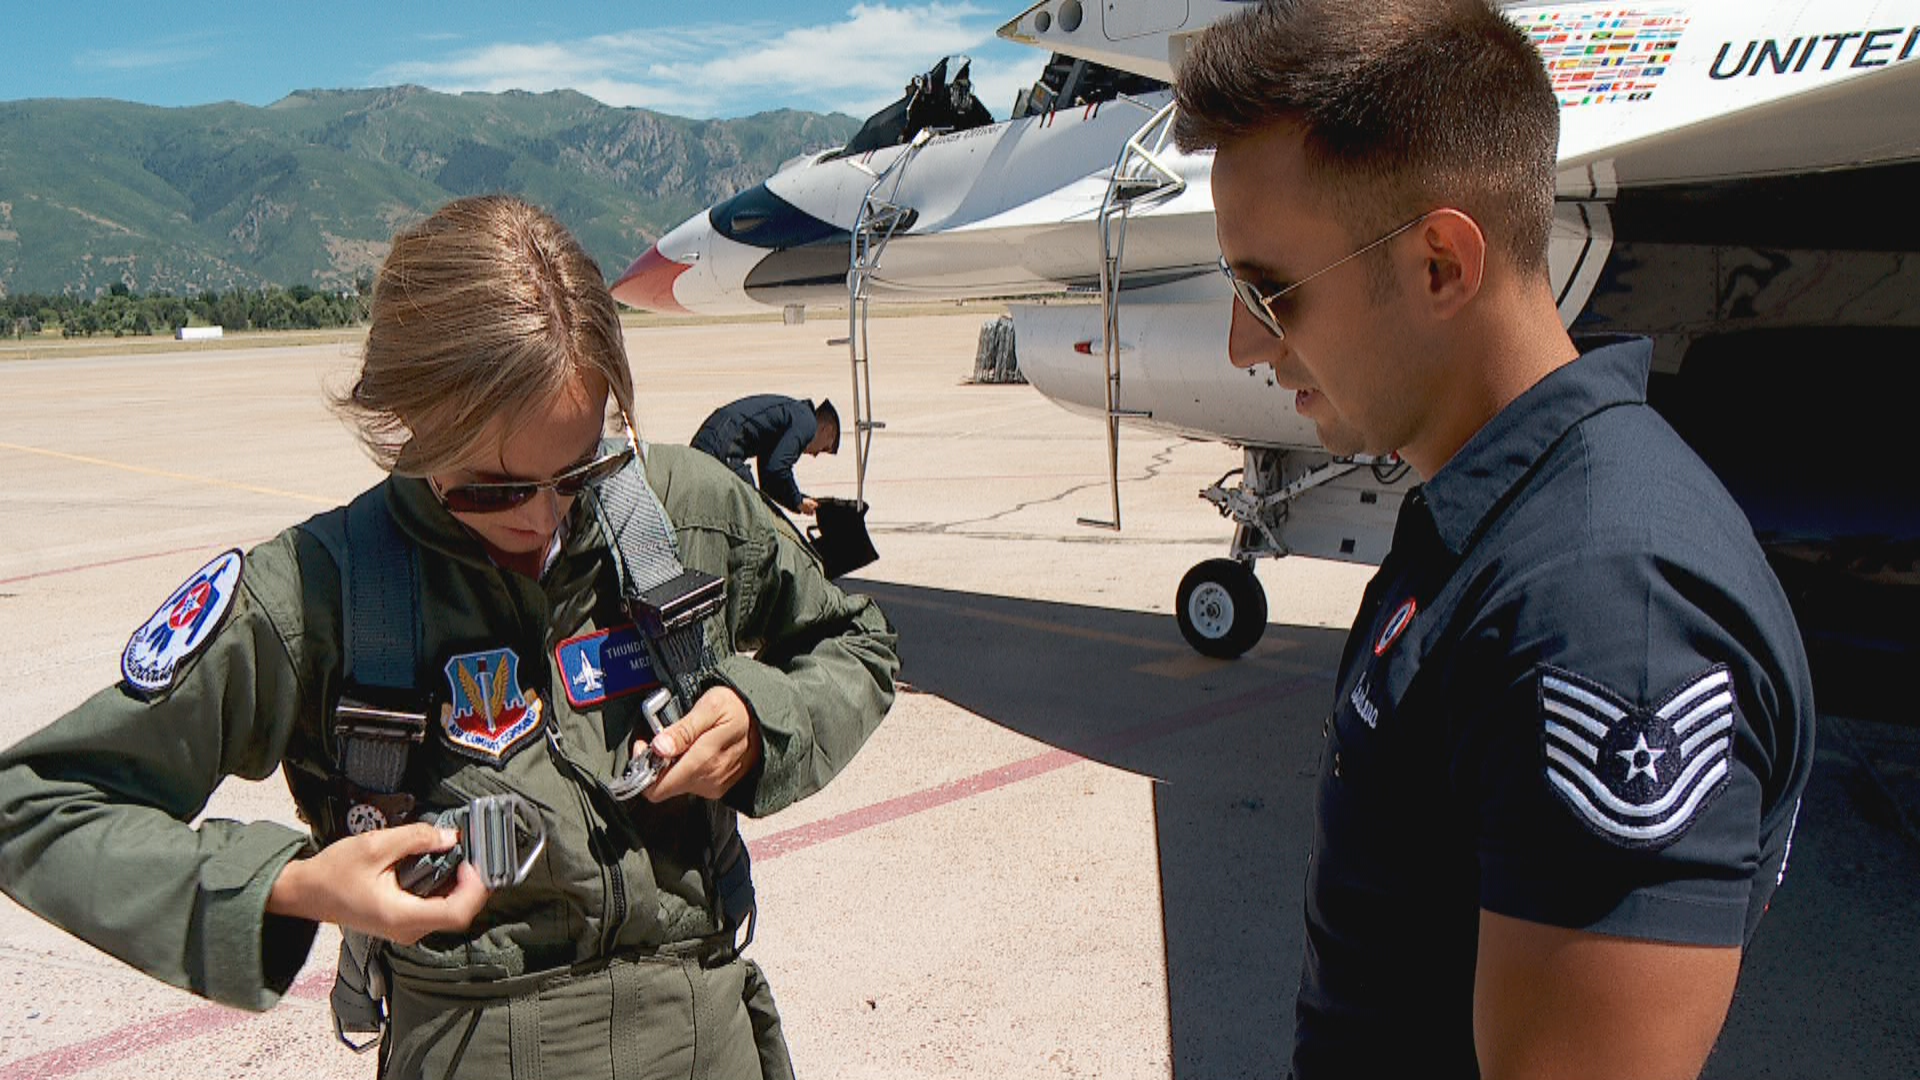 KUTV's Morgan Saxton suits up for her flight with the legendary Thunderbirds ahead of Hill Air Force Base's air show (Photo: KUTV){ }